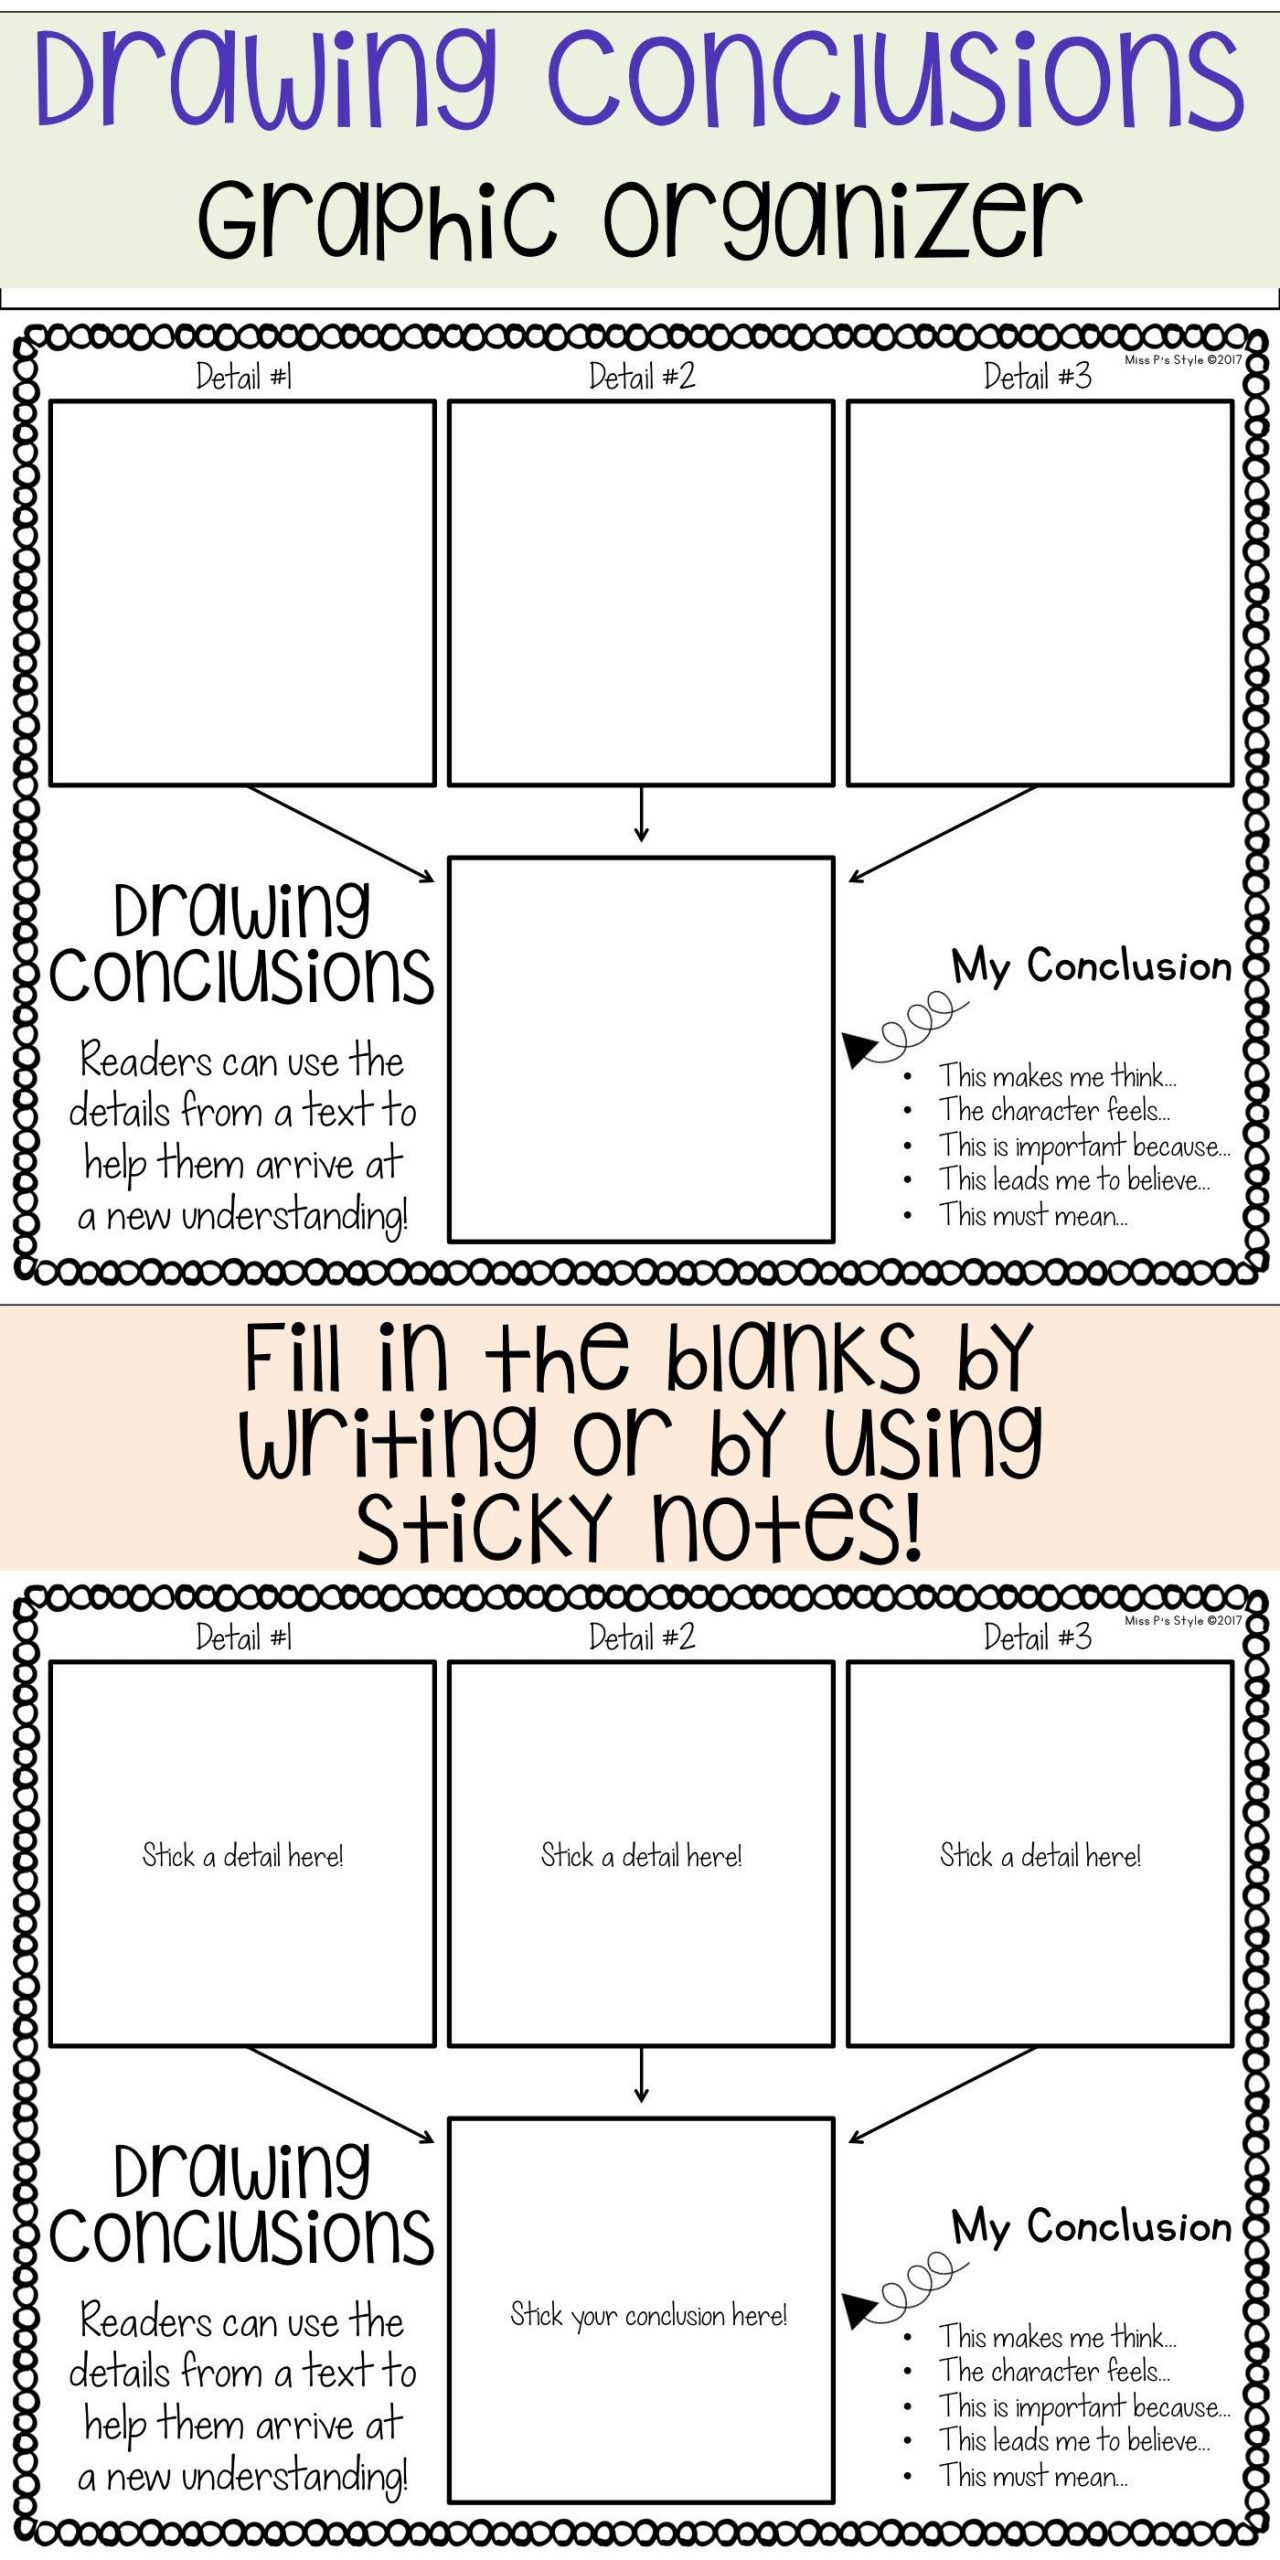 Drawing Conclusion Worksheets 3rd Grade Drawing Conclusions Graphic organizer